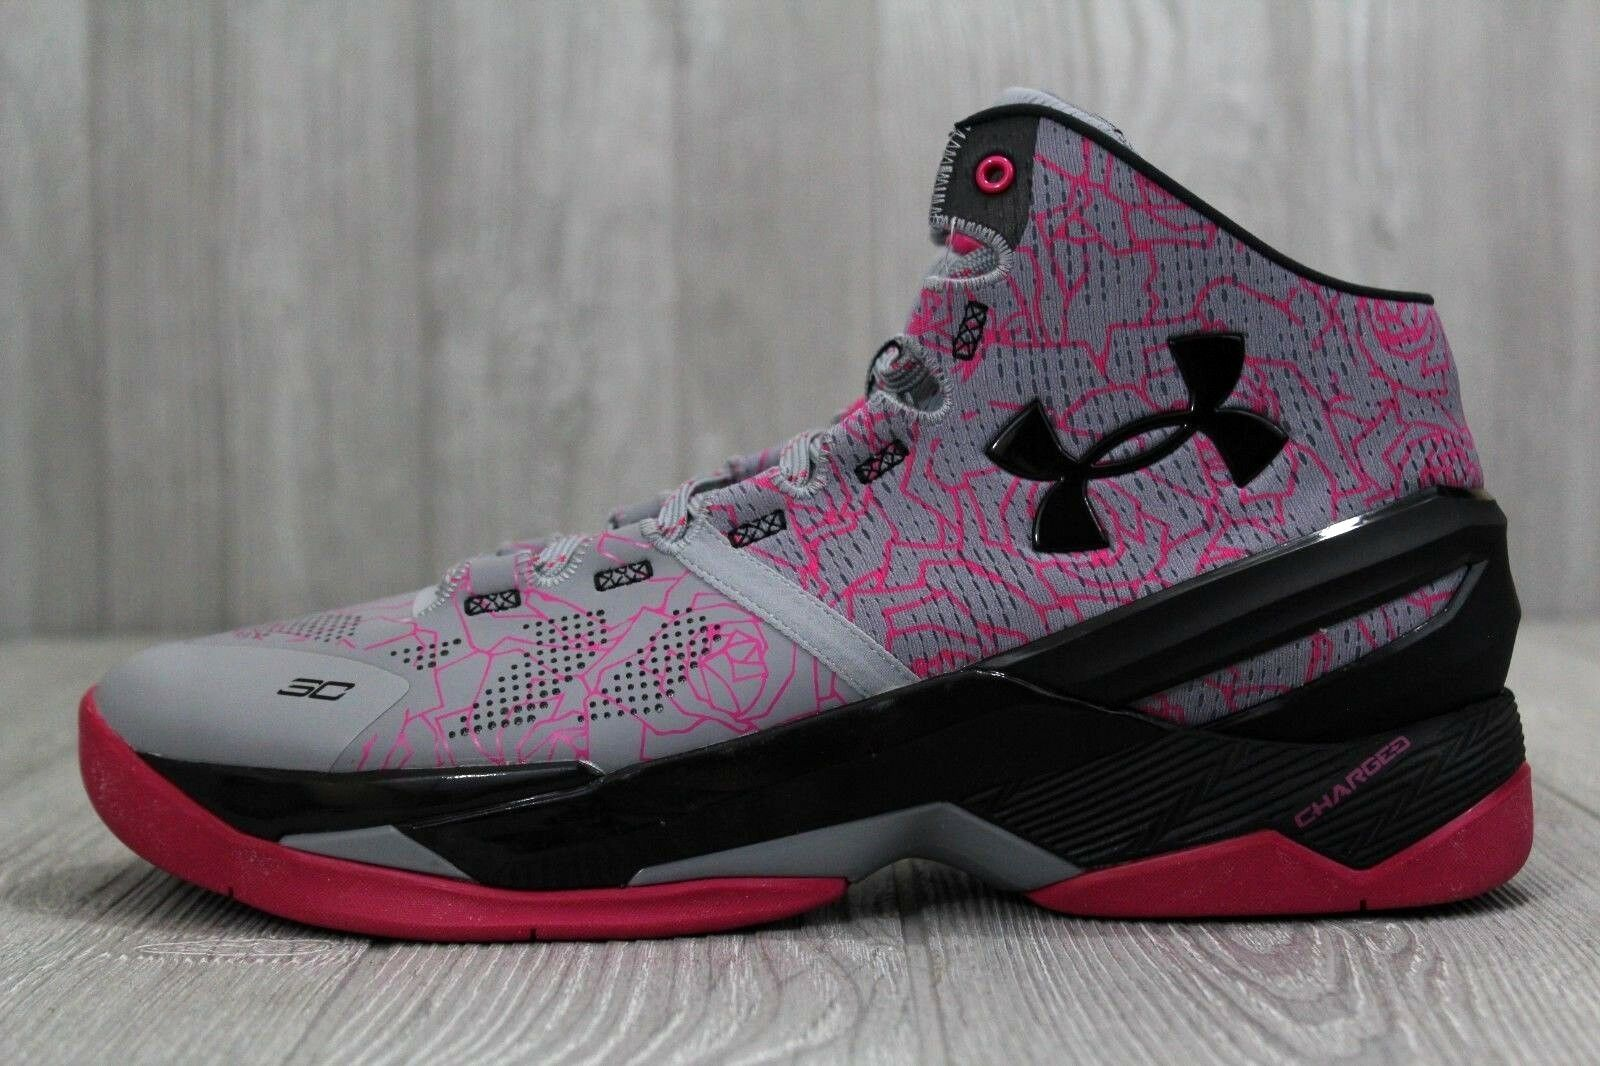 Under Armour UA Curry 2 1259007 401 Blue White Red Size 9.5 10 10.5 11 11.5 12